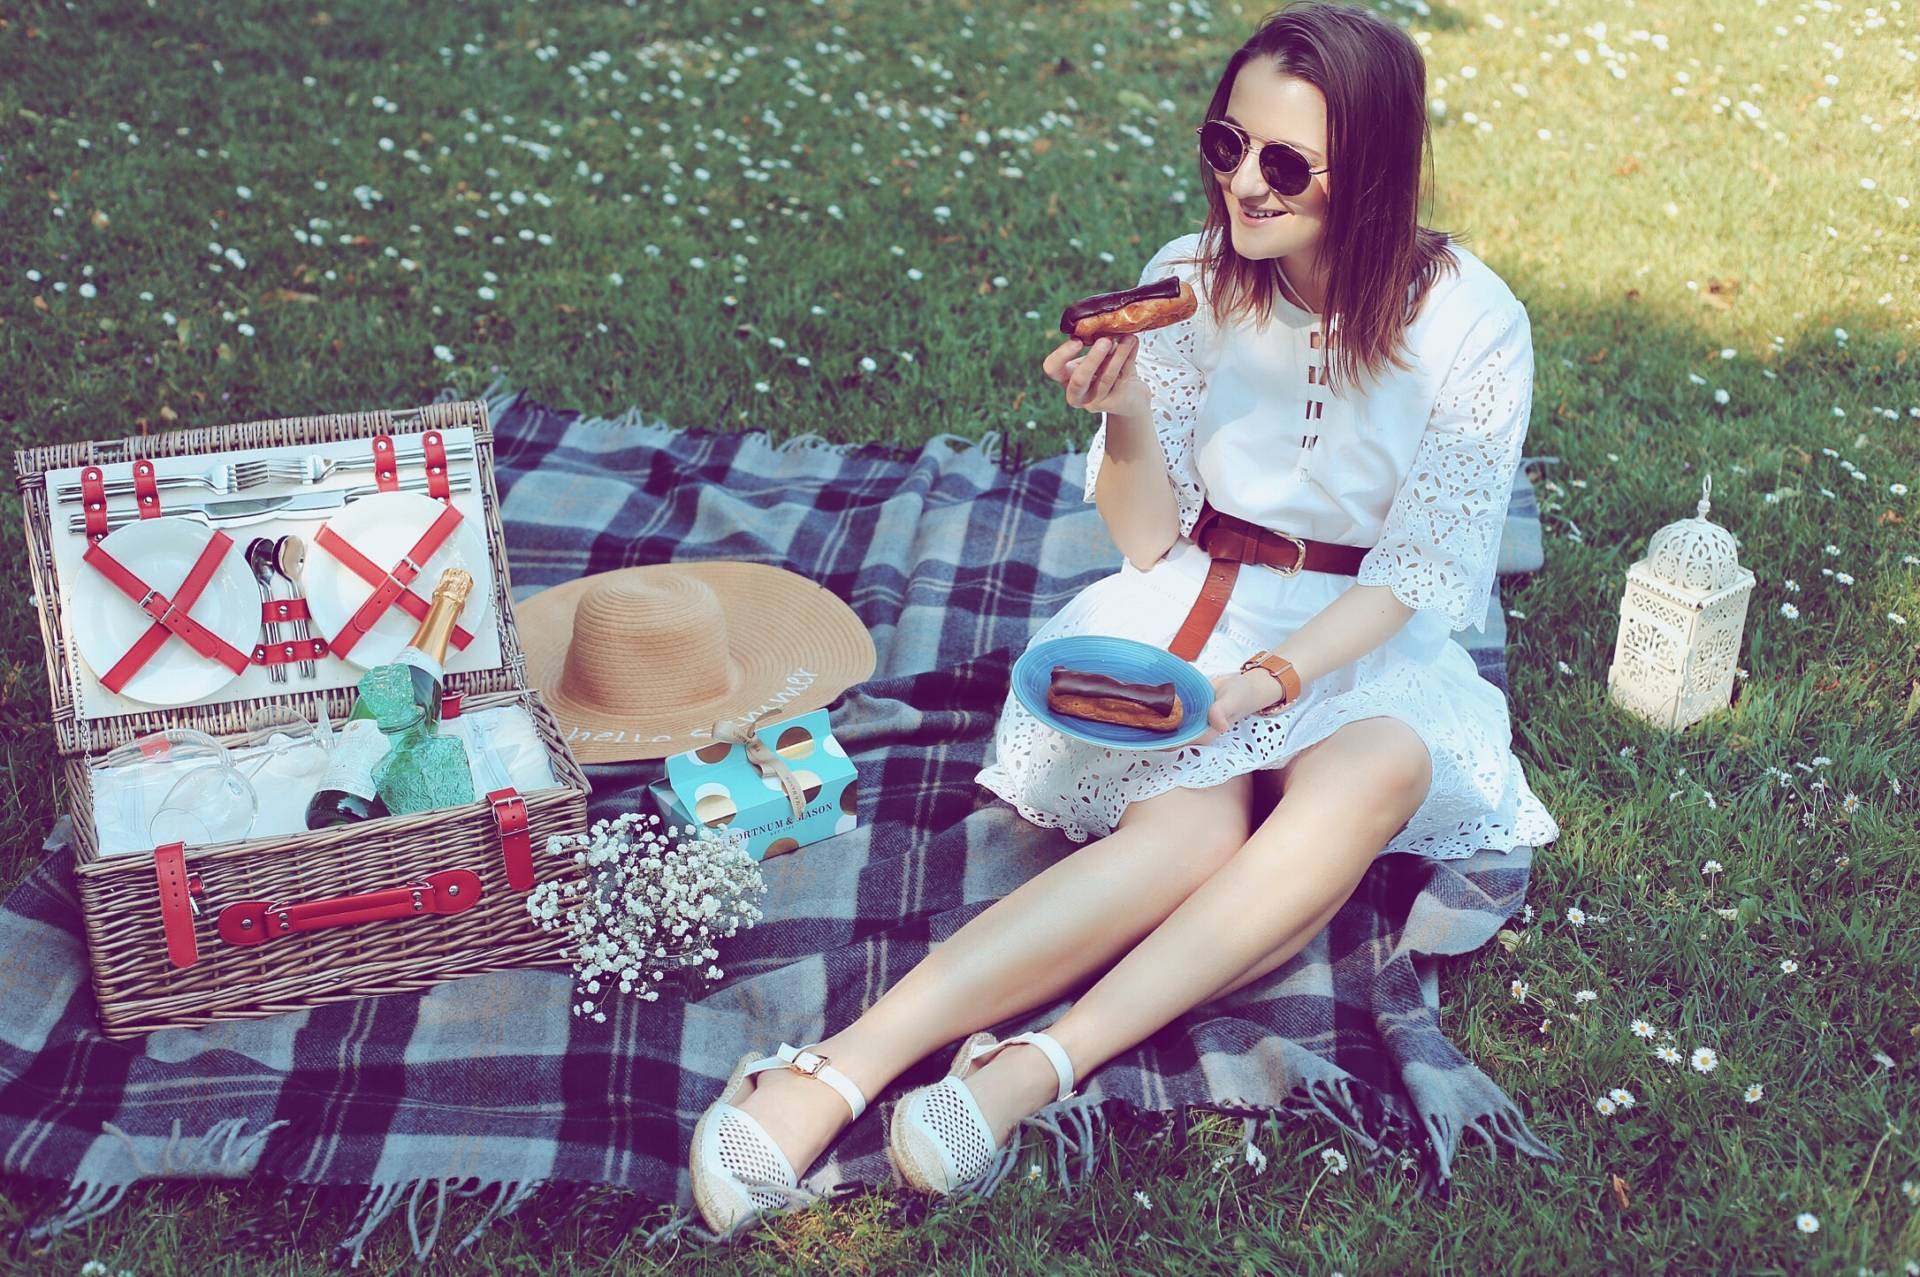 Pack and go: picnic with the family